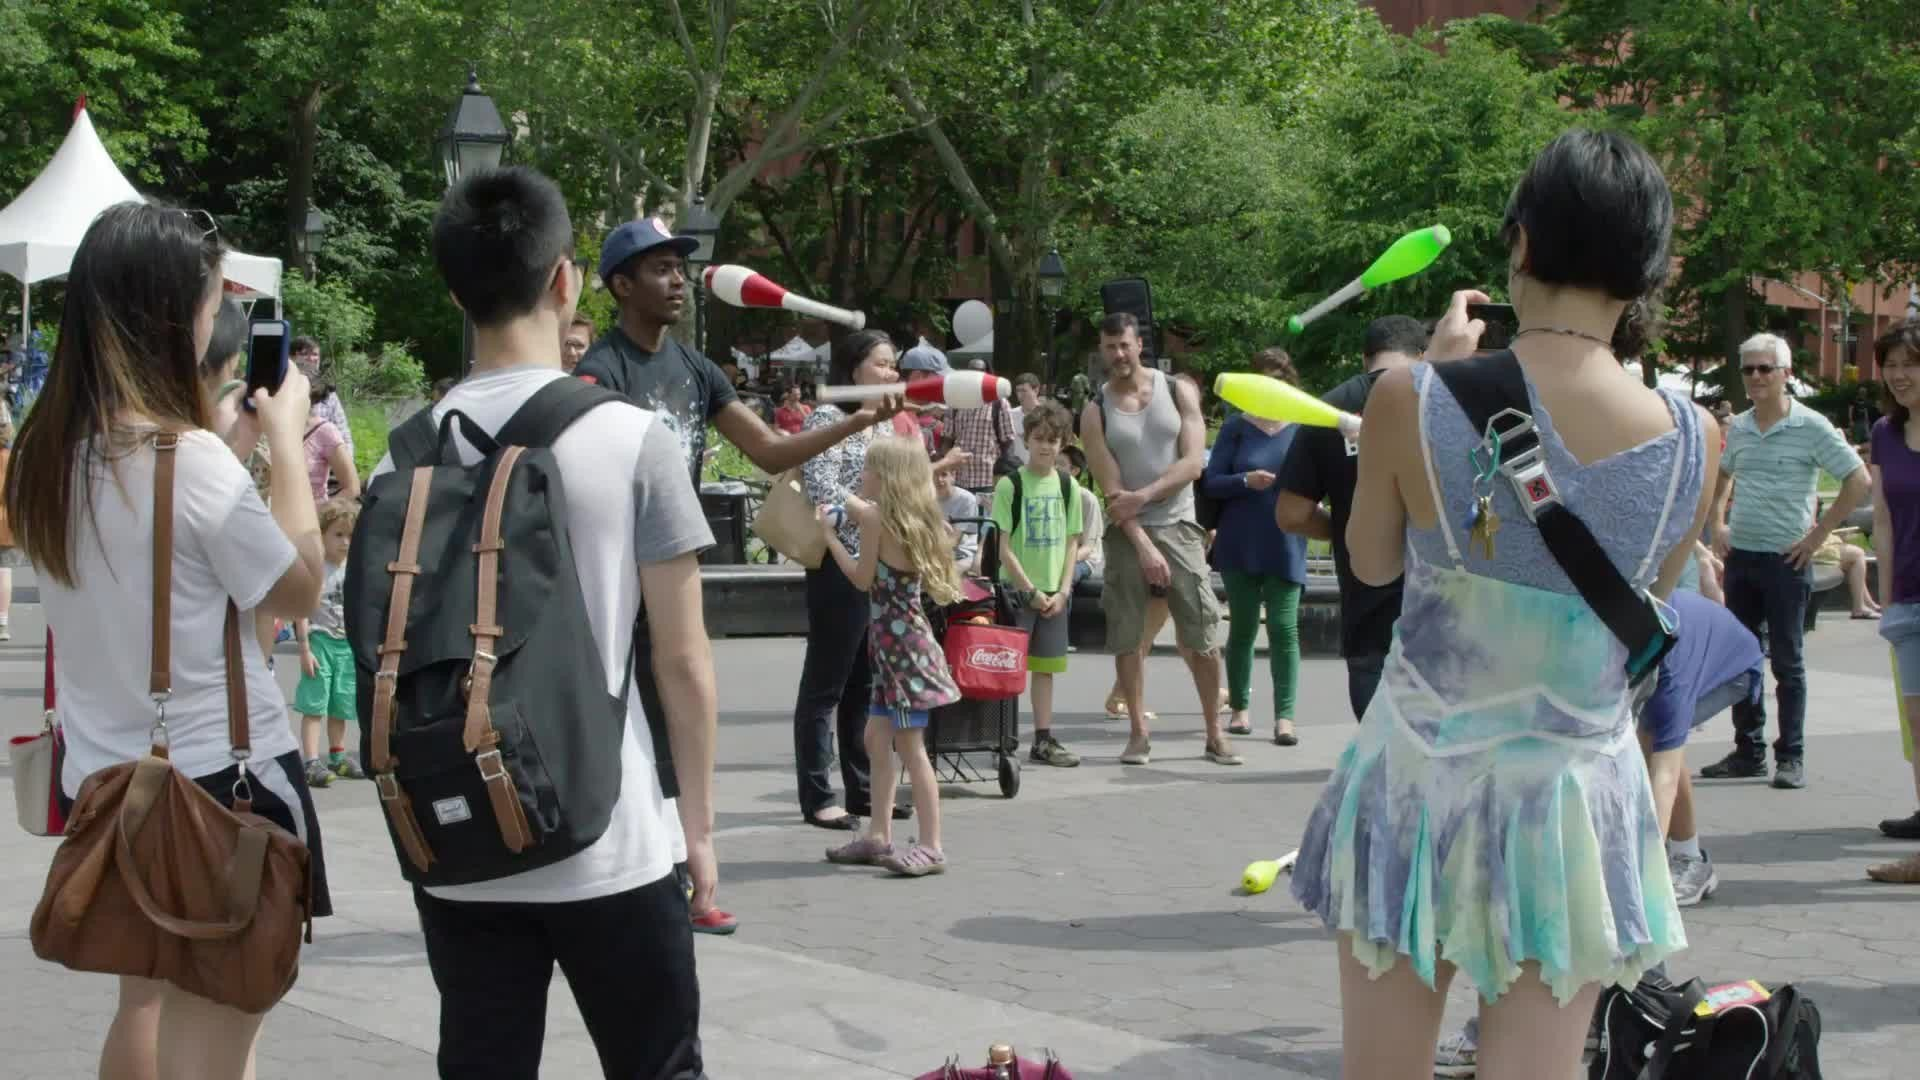 jugglers performing in Washington Square Park in summer - juggling bowling pins in slow motion